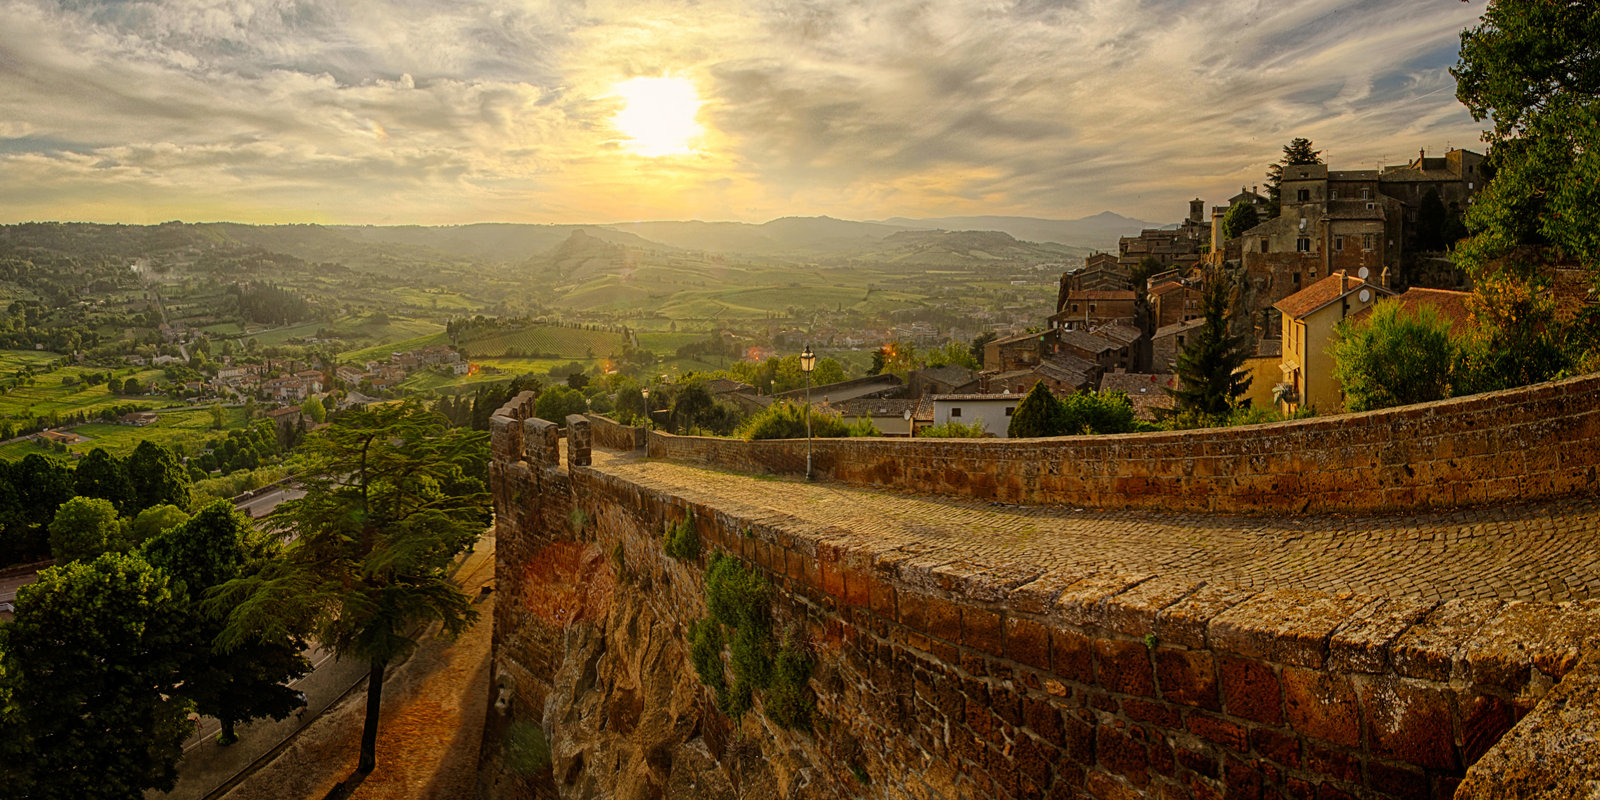 orvieto_sunset_by_scwl-d666n00